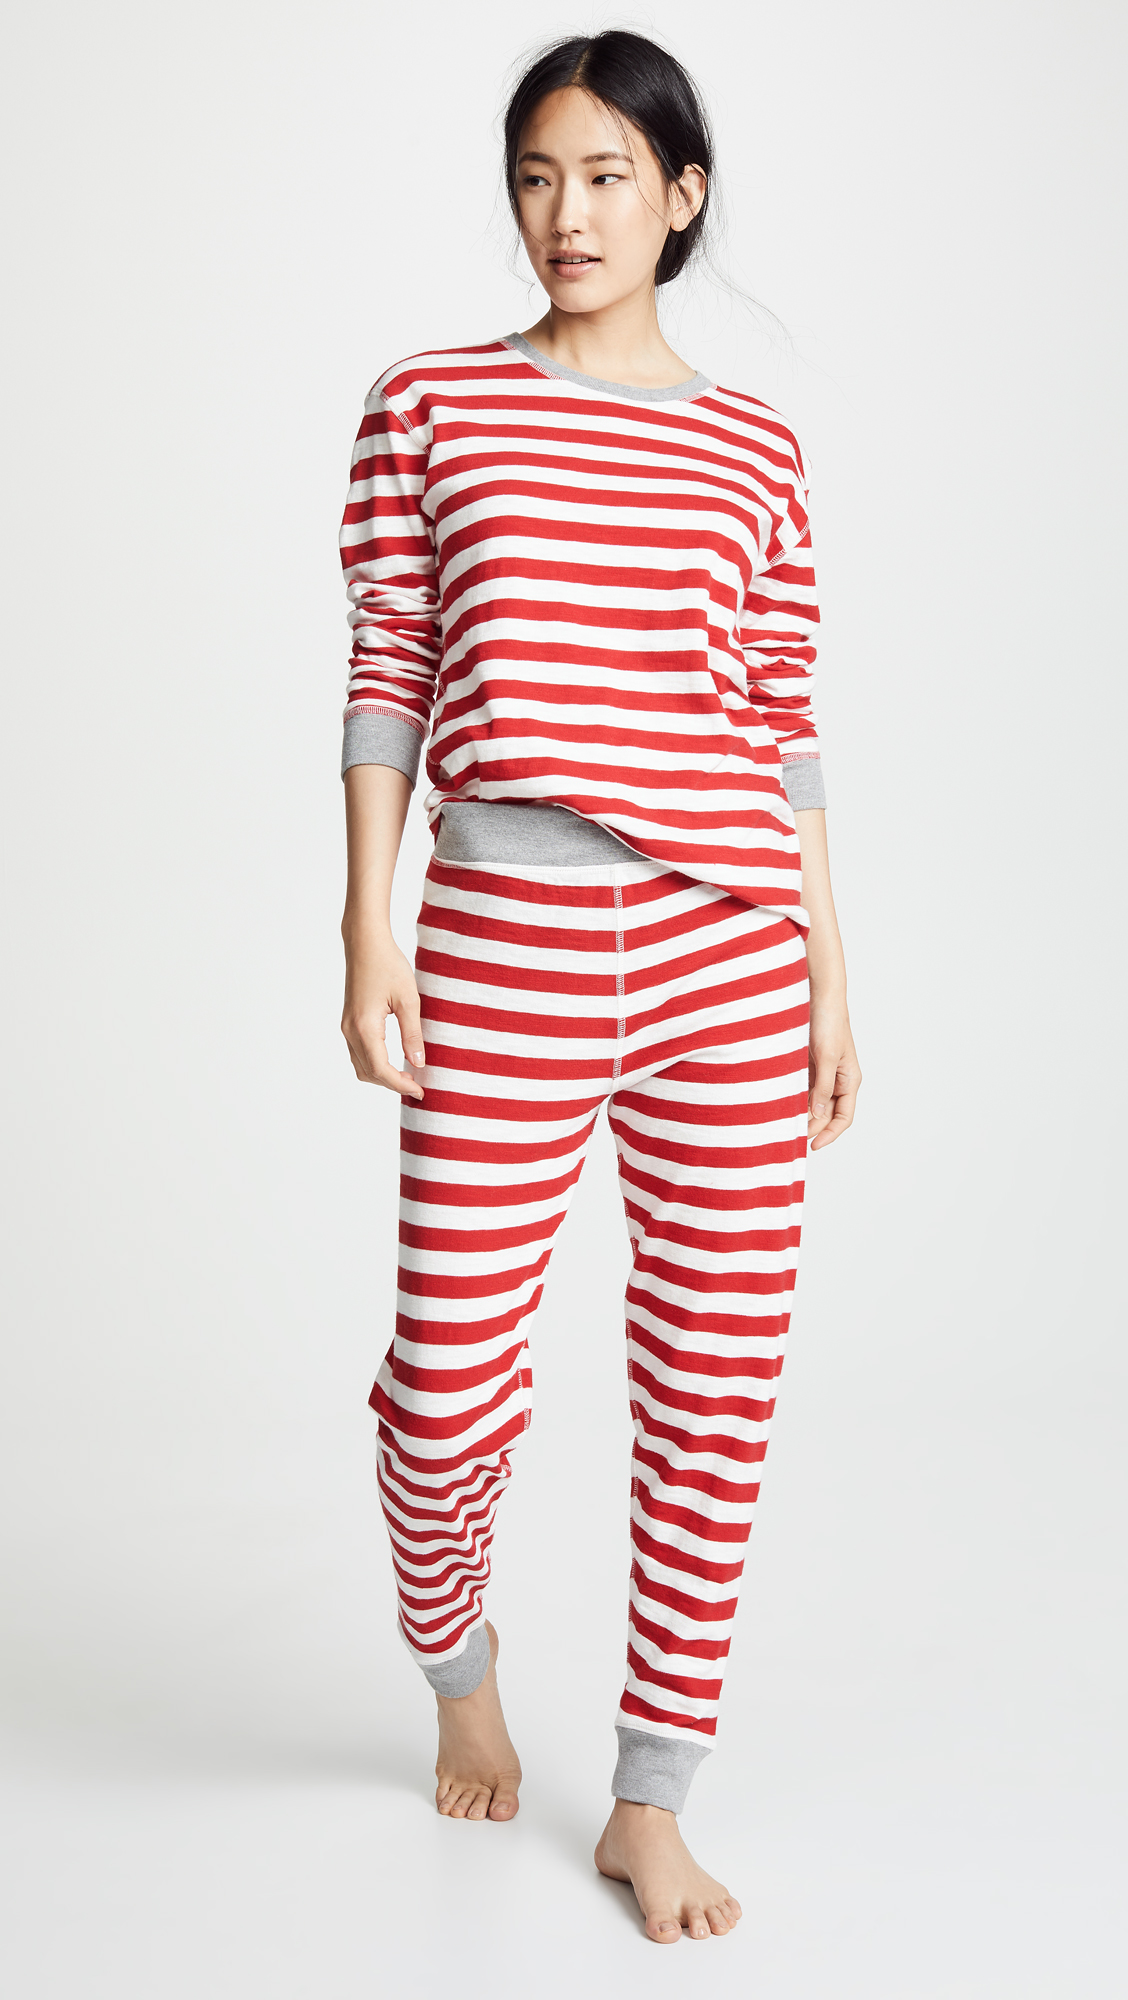 3fbb8bb0a292 Holiday Pajamas for the Entire Family - Katie Considers